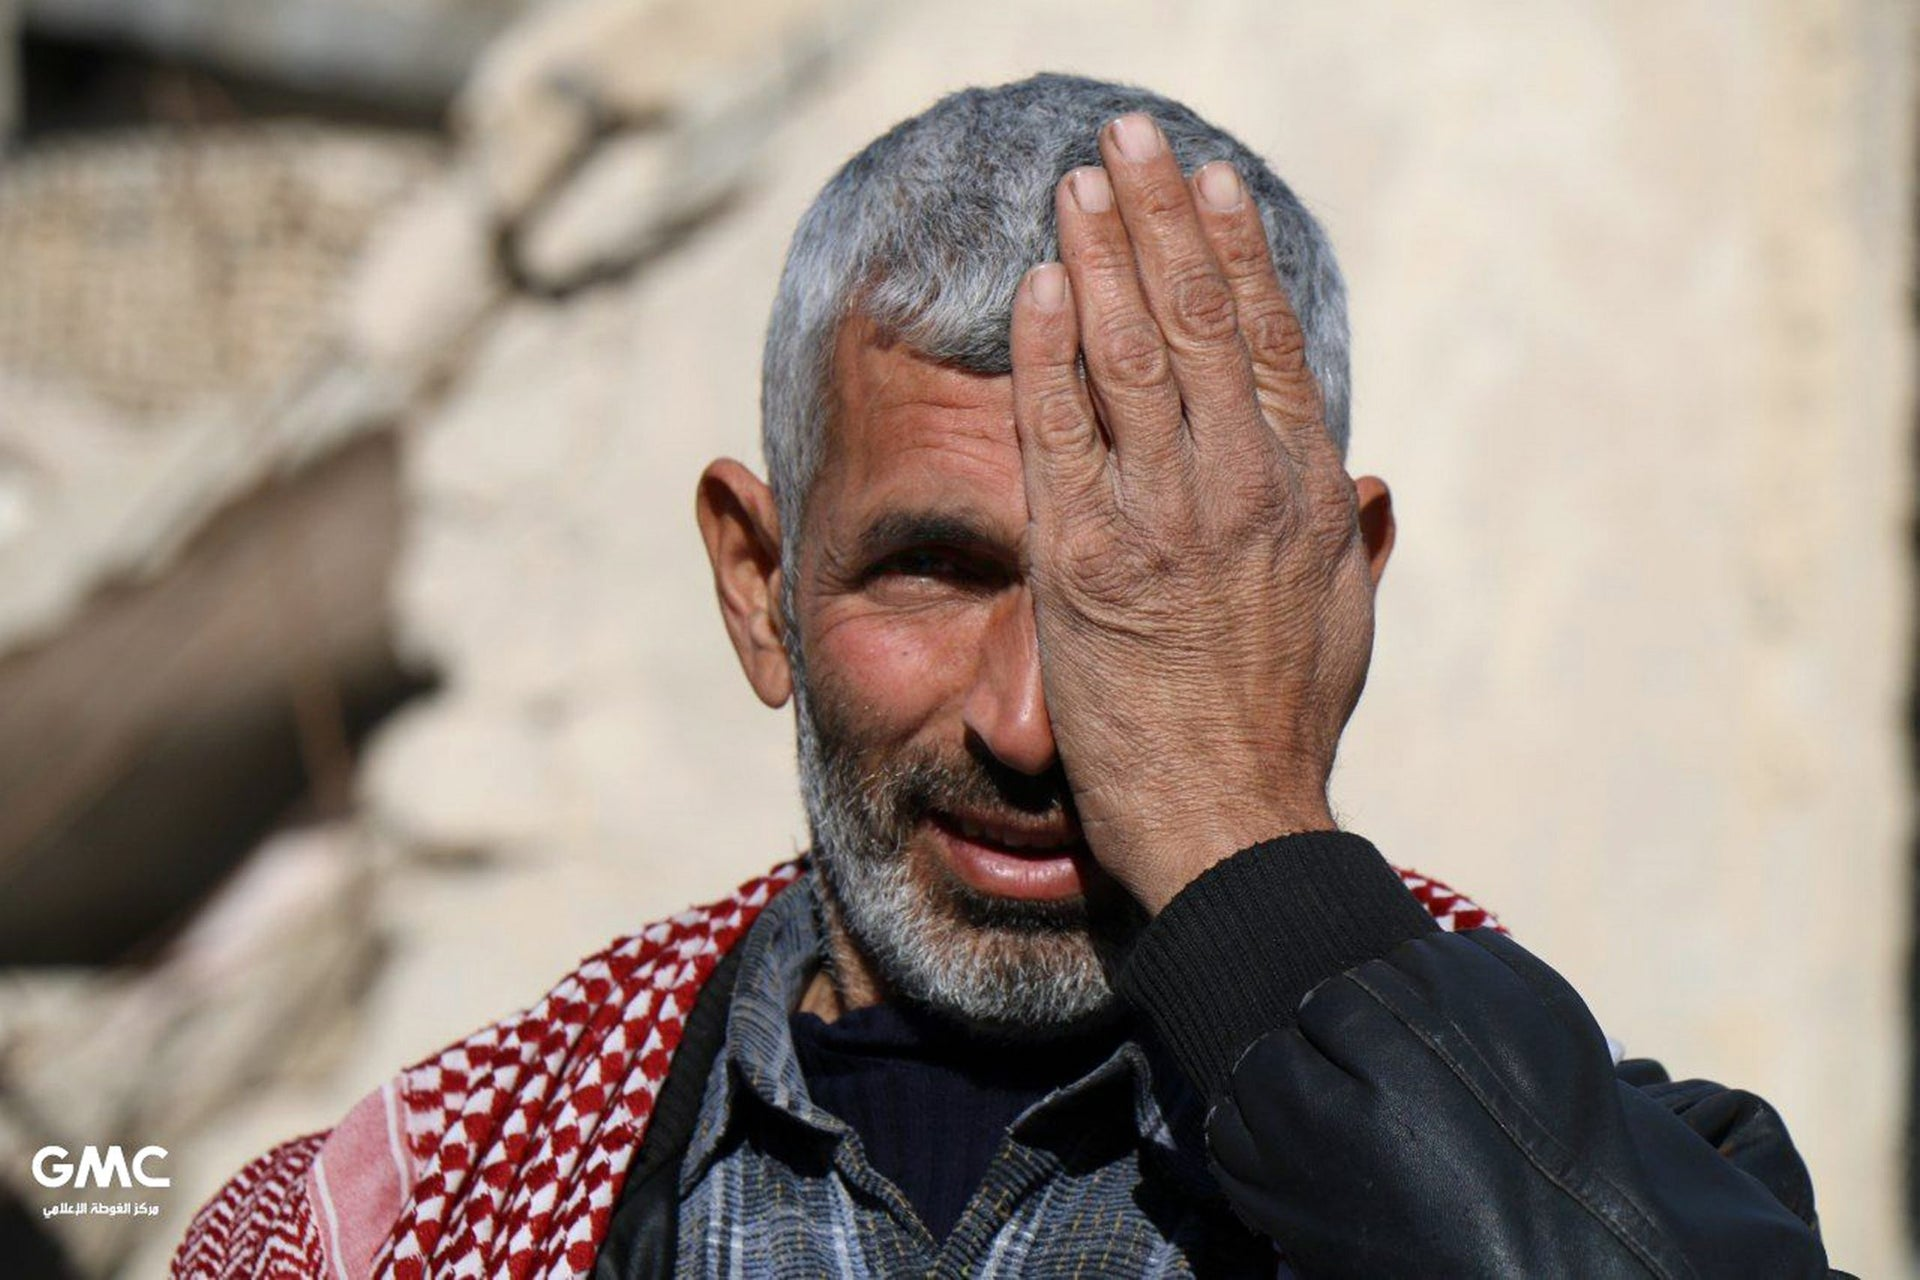 Syrian poses covering one eye with his hand as part of a campaign in solidarity with a baby boy, Karim Abdallah, who lost an eye, in Douma, Syria, on December 18, 2017.